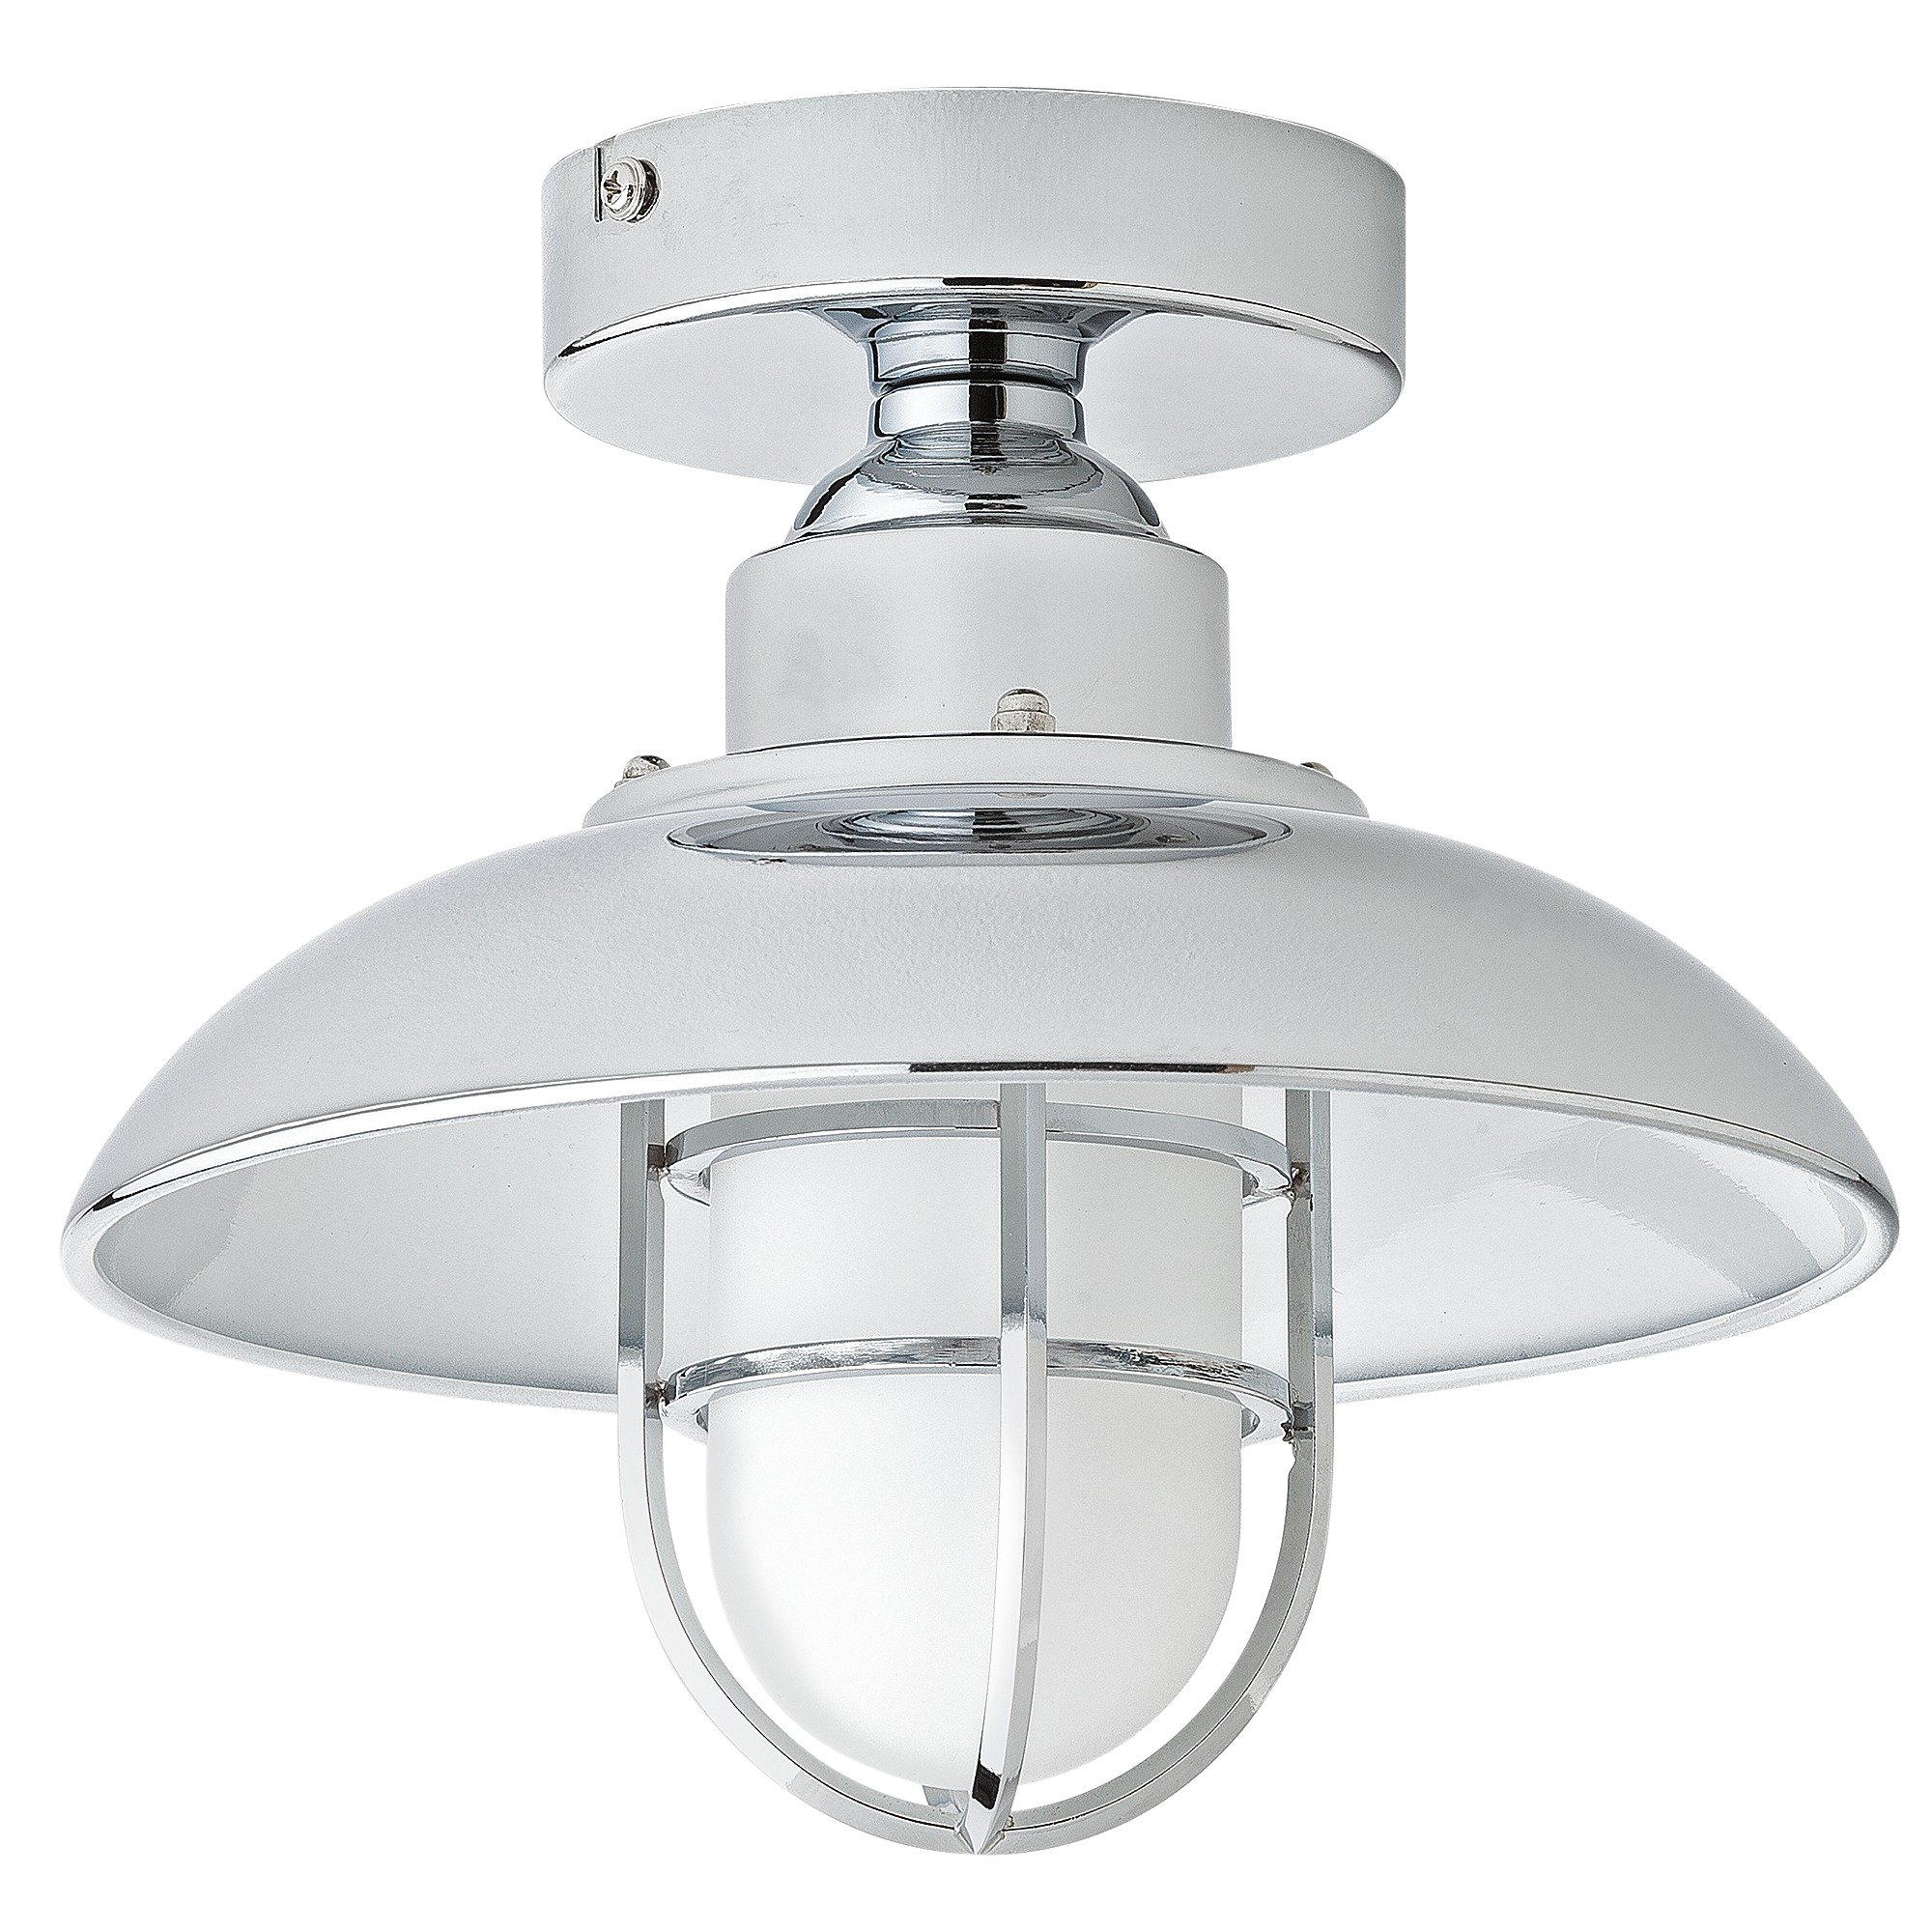 Bathroom Lighting Uk buy collection kildare fisherman lantern bathroom light - nickle